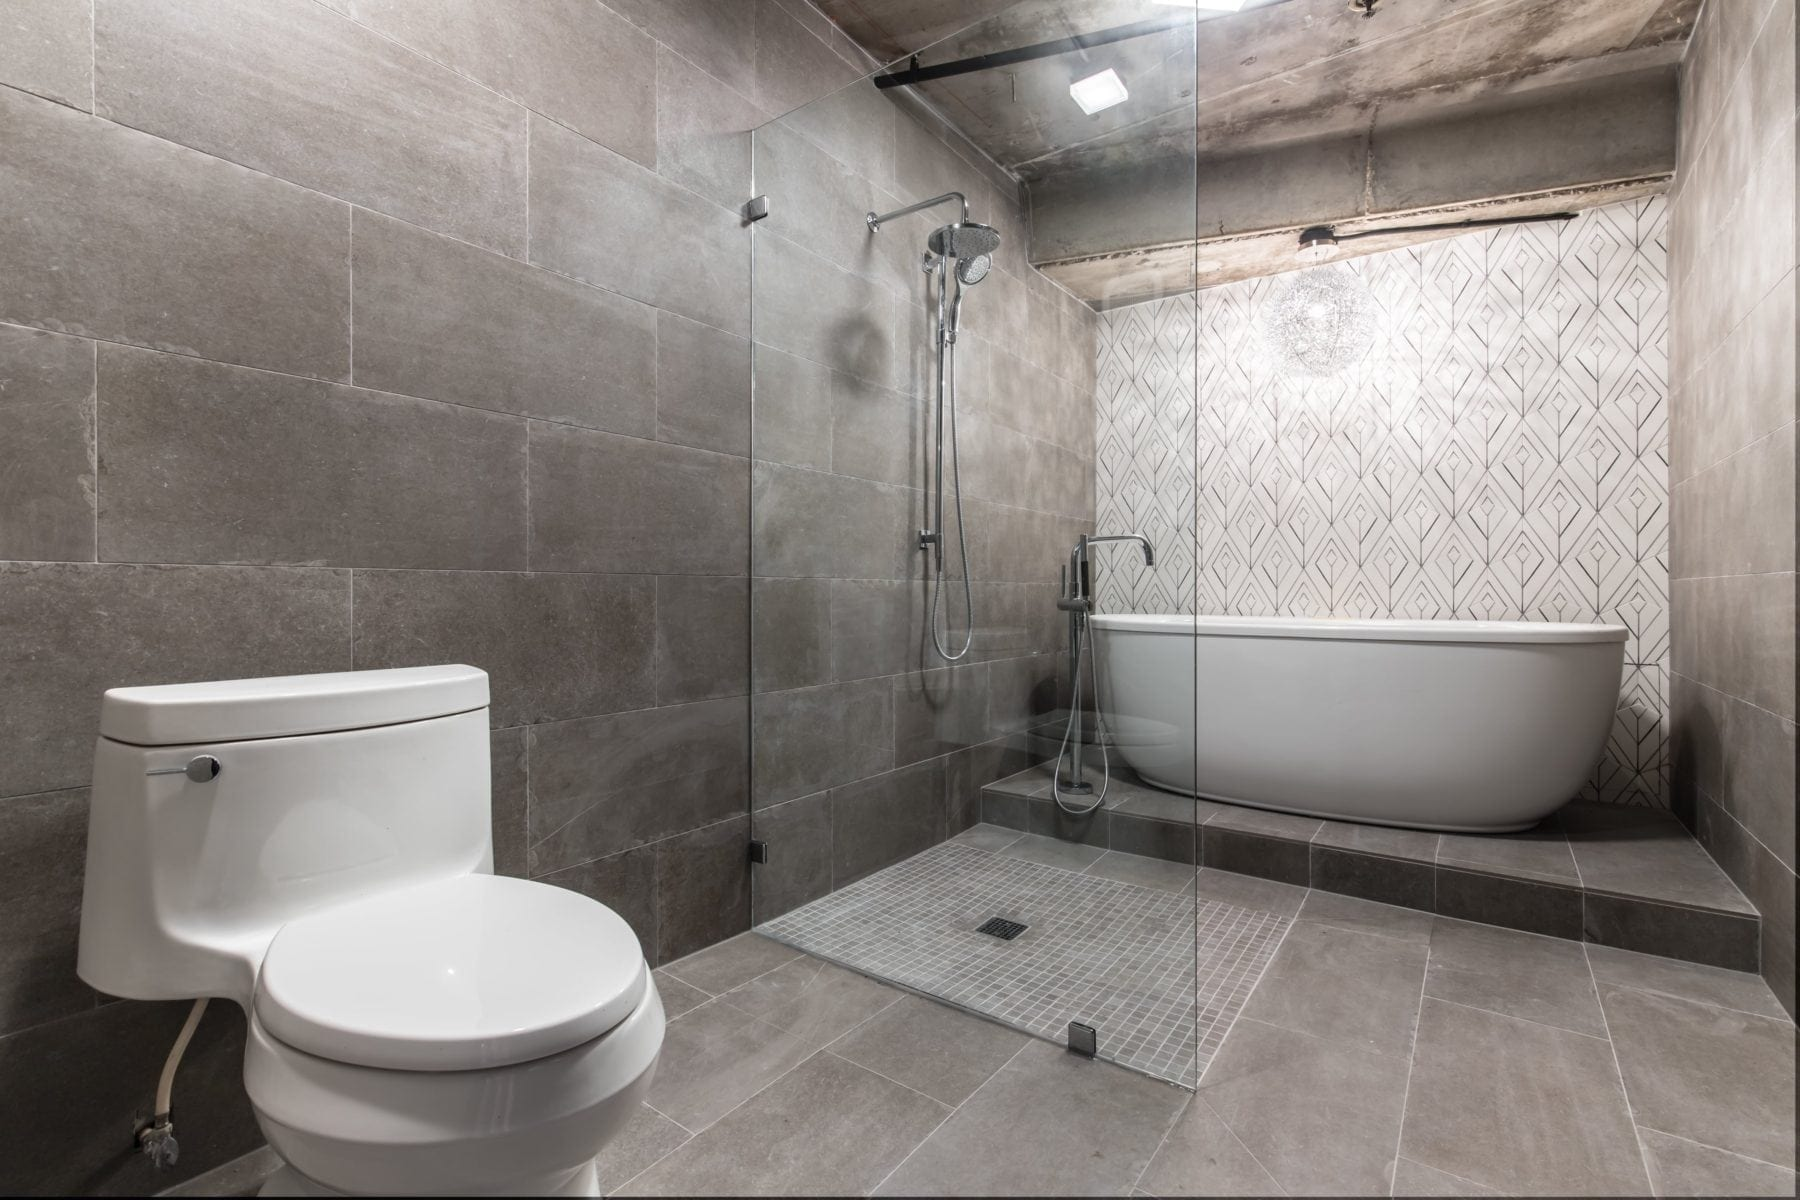 New Wet room master bathroom after Renowned Renovation Uptown Condo Bathroom Remodel